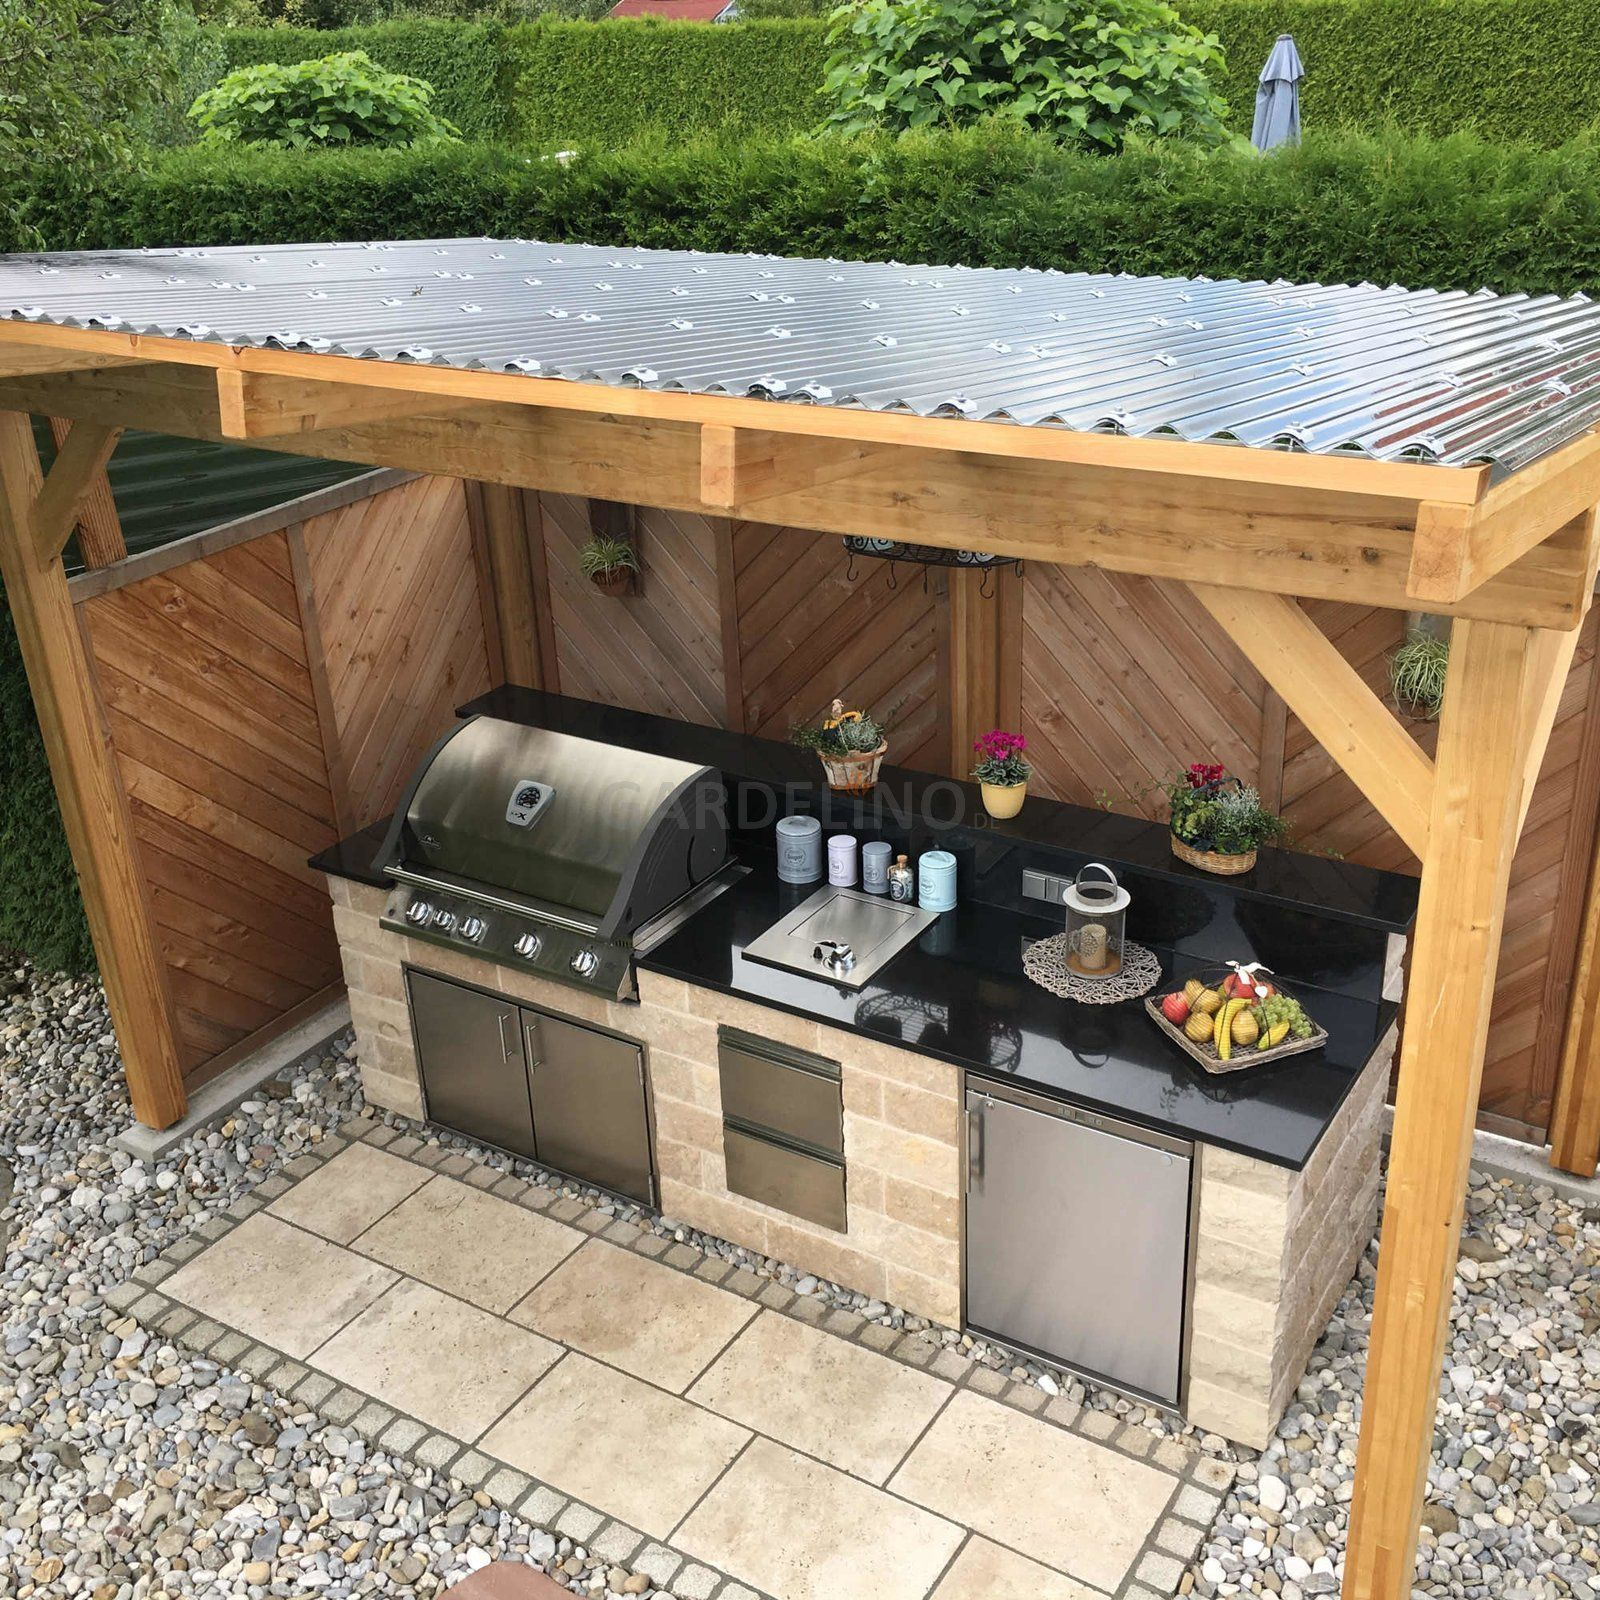 Best Outdoor Kitchen Ideas And Backyard Design For Small Space On